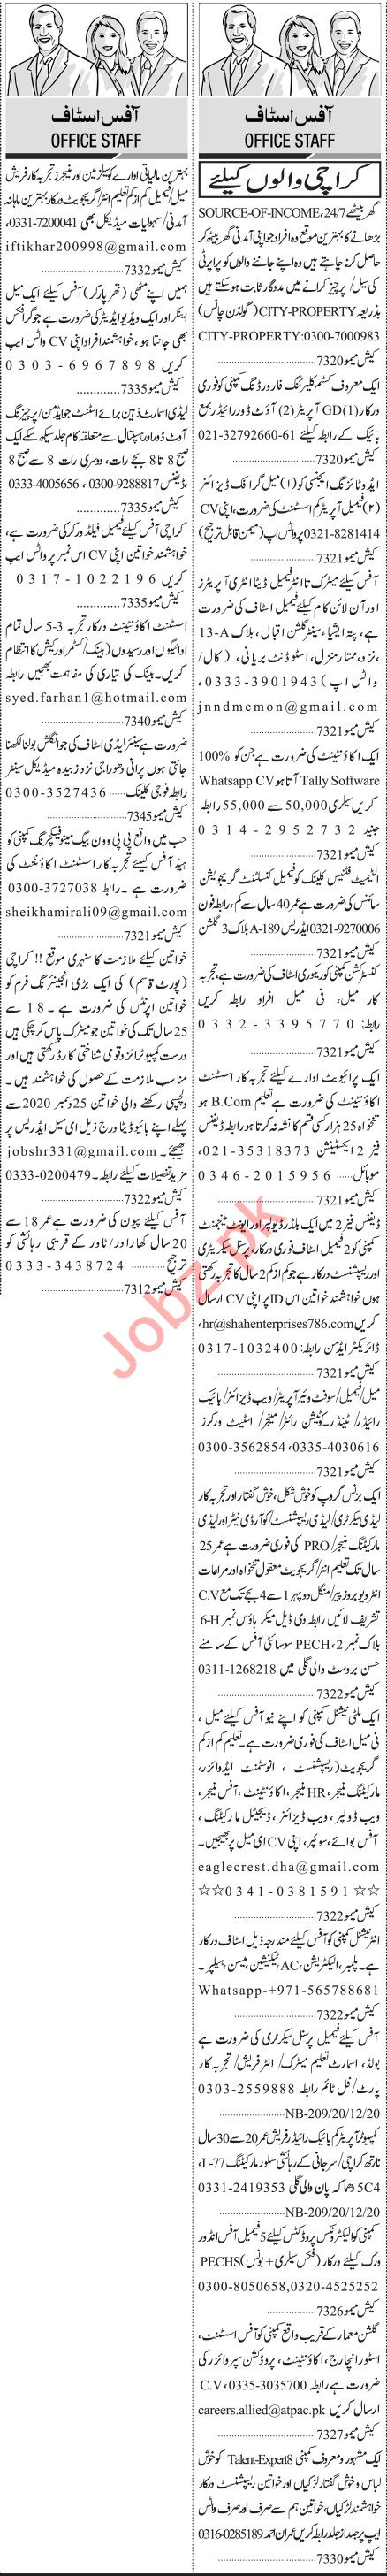 Jang Sunday Classified Ads 20 Dec 2020 for Management Staff